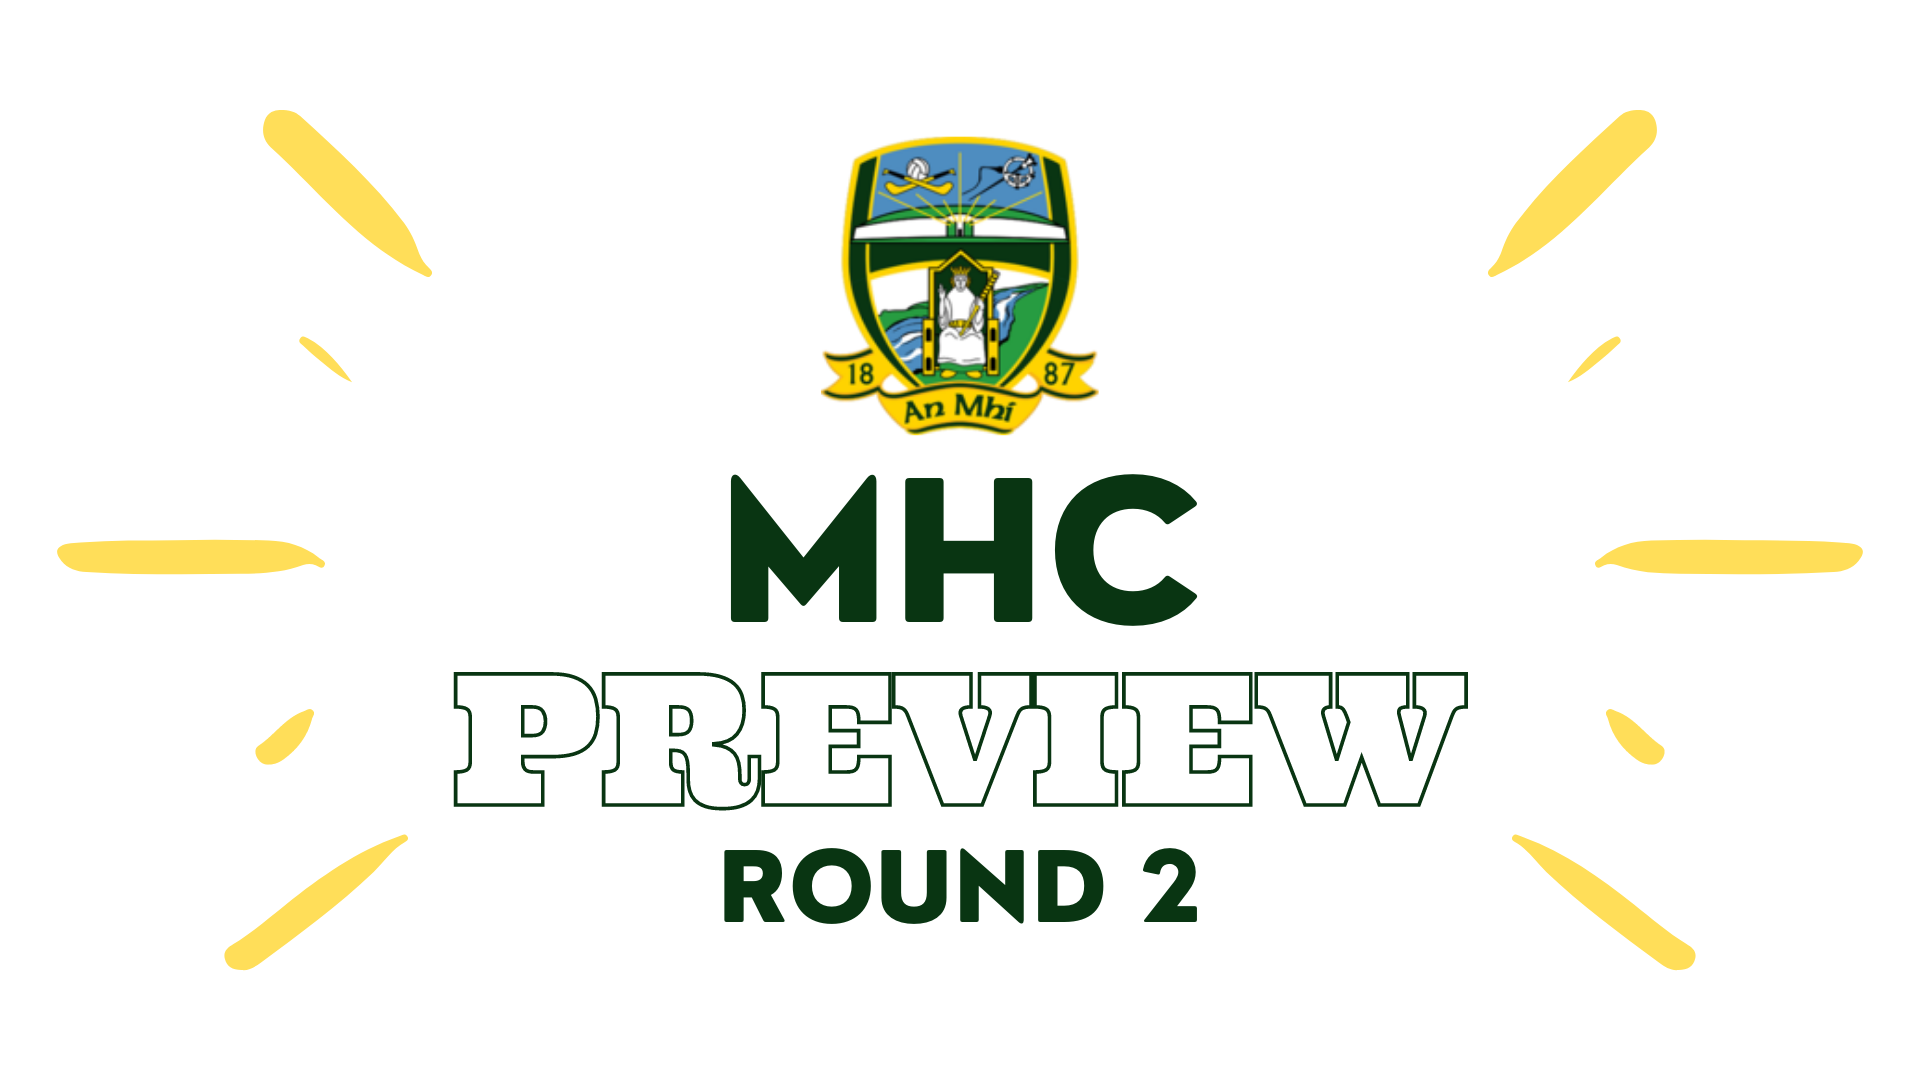 MHC Round 2 PREVIEW